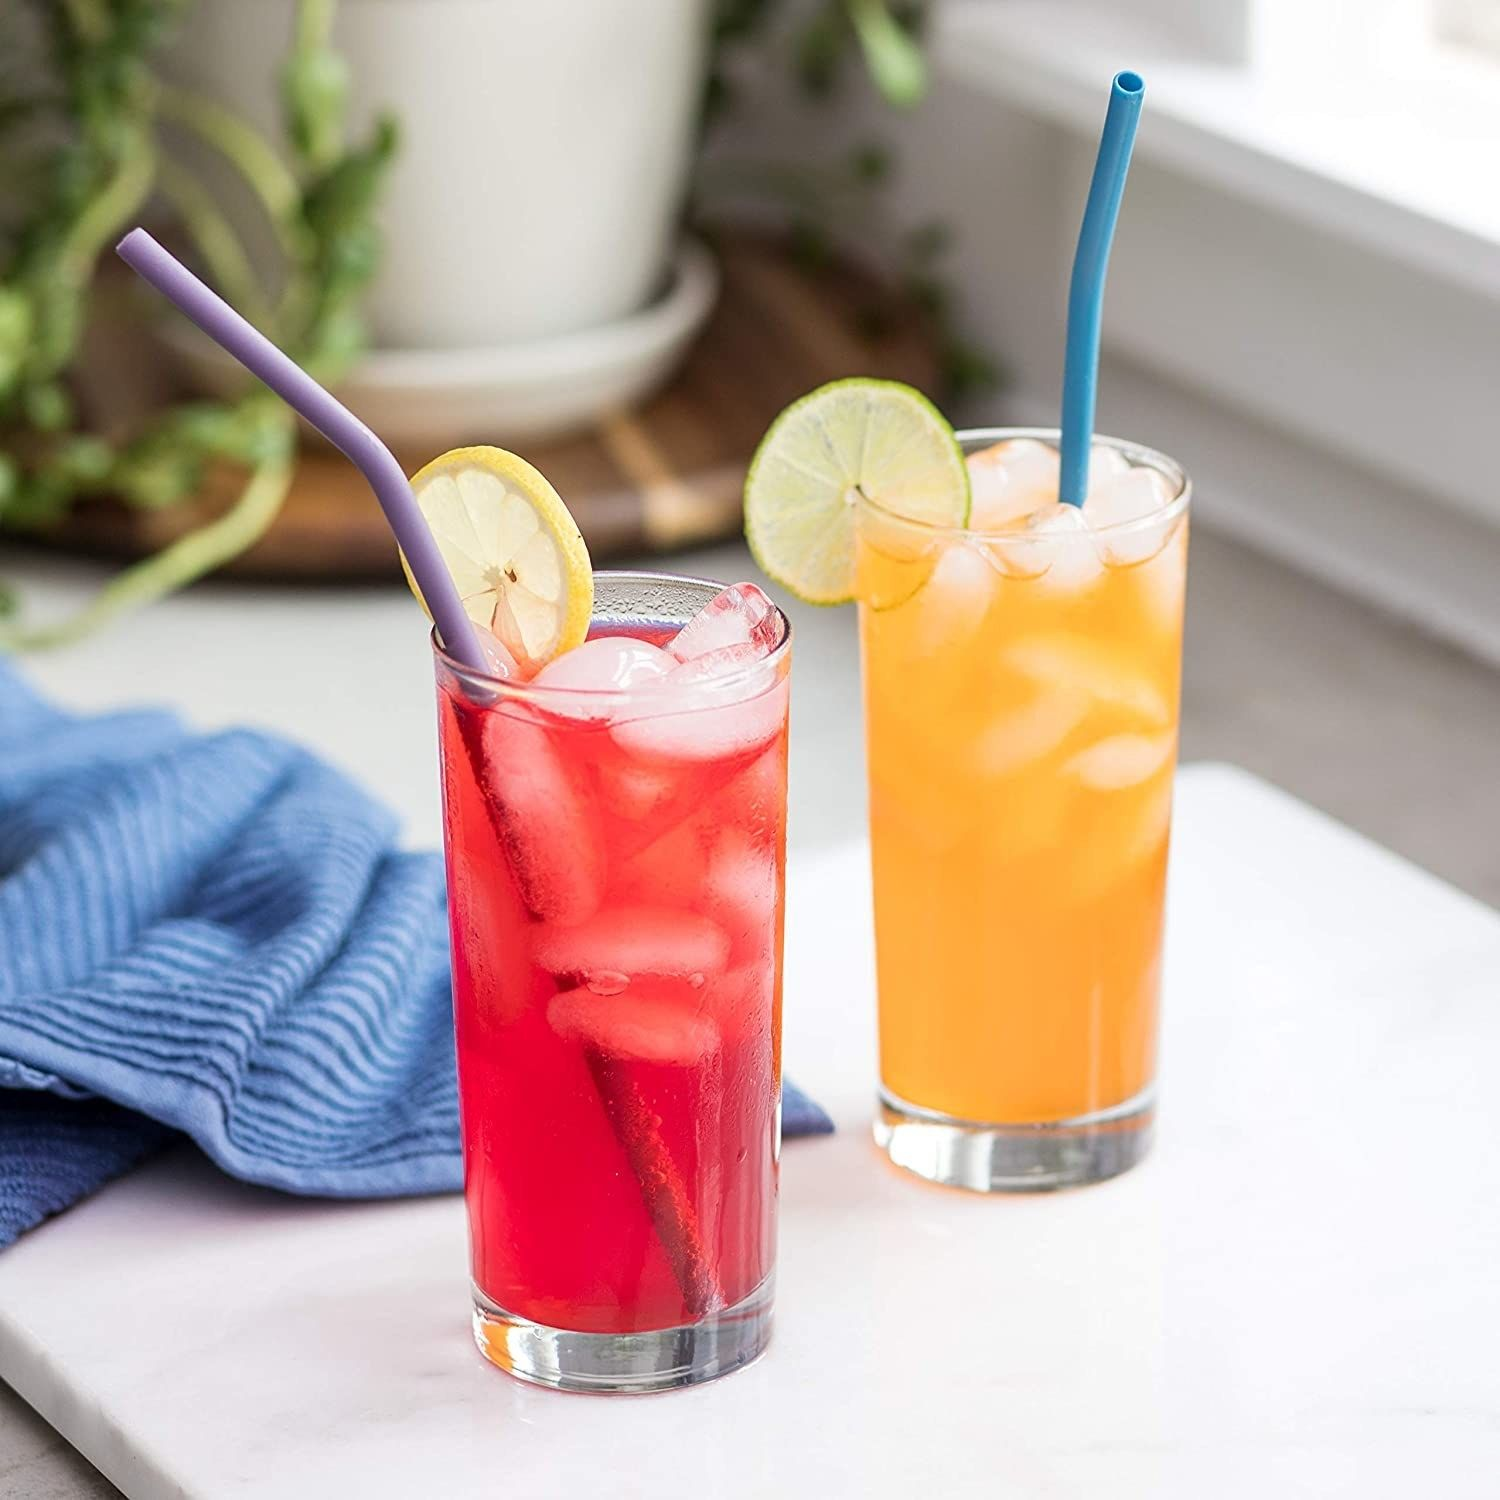 A set of 10 silicone straws to curb your use of plastic